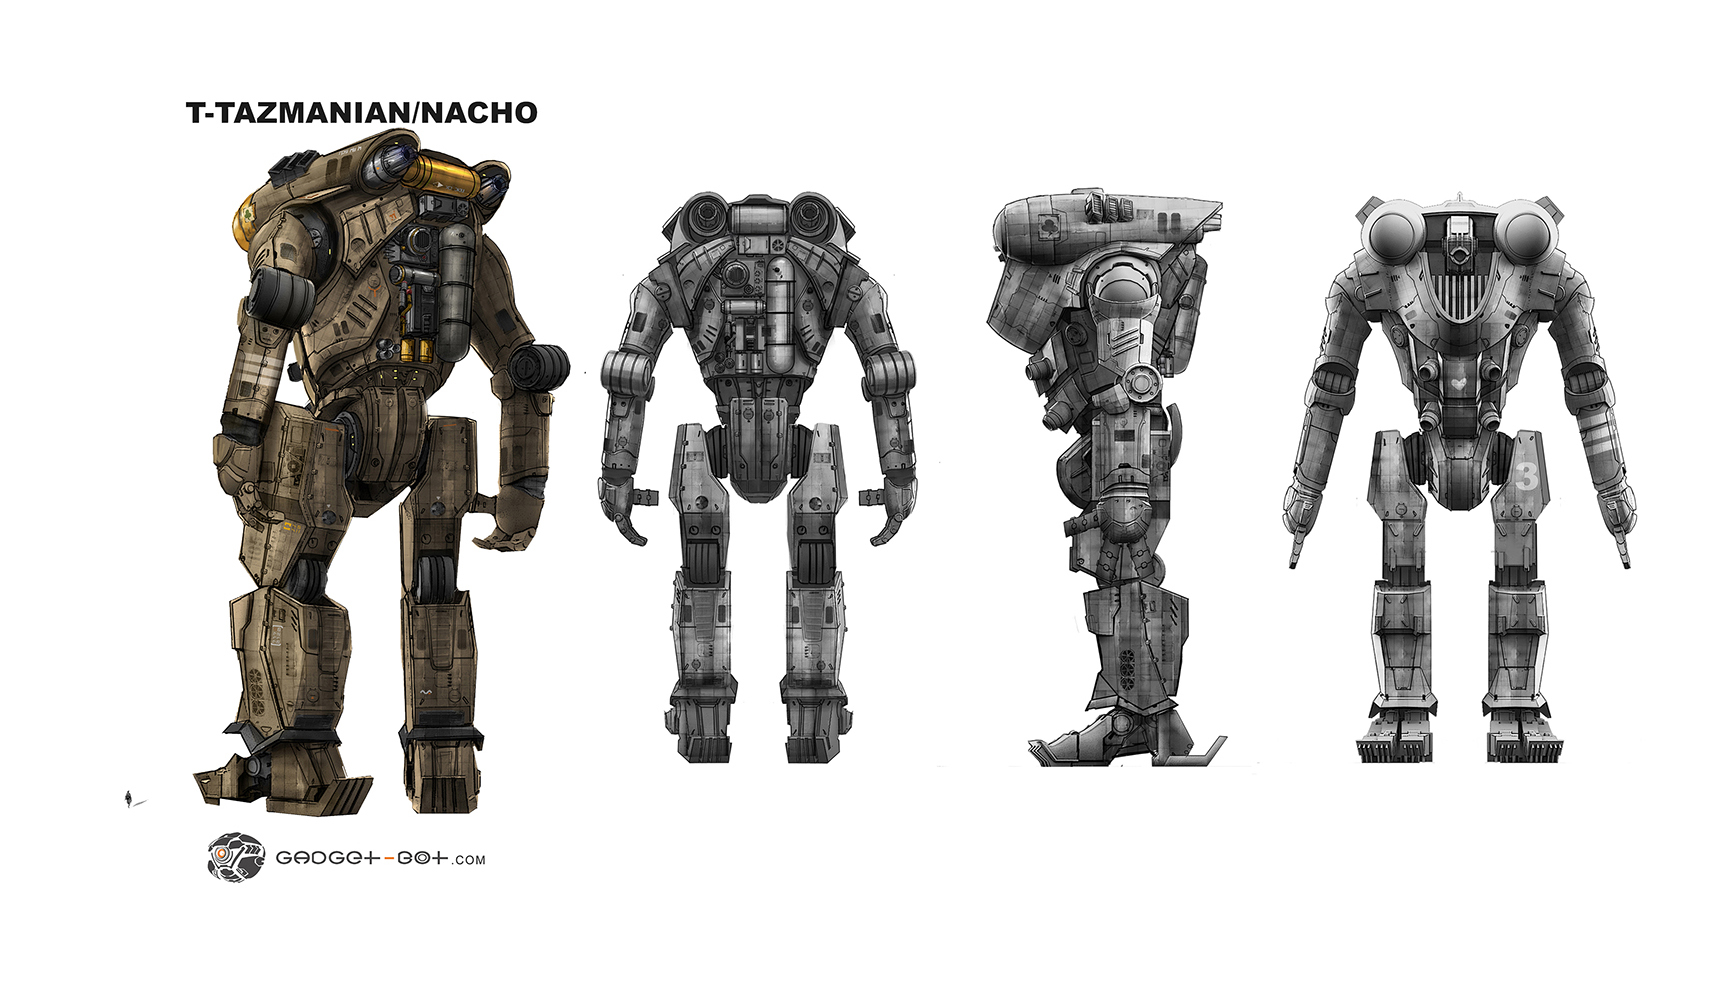 Final orthographic details focusing on the back design. Design of Jaeger by the talented : Francisco Ruiz Velasco.